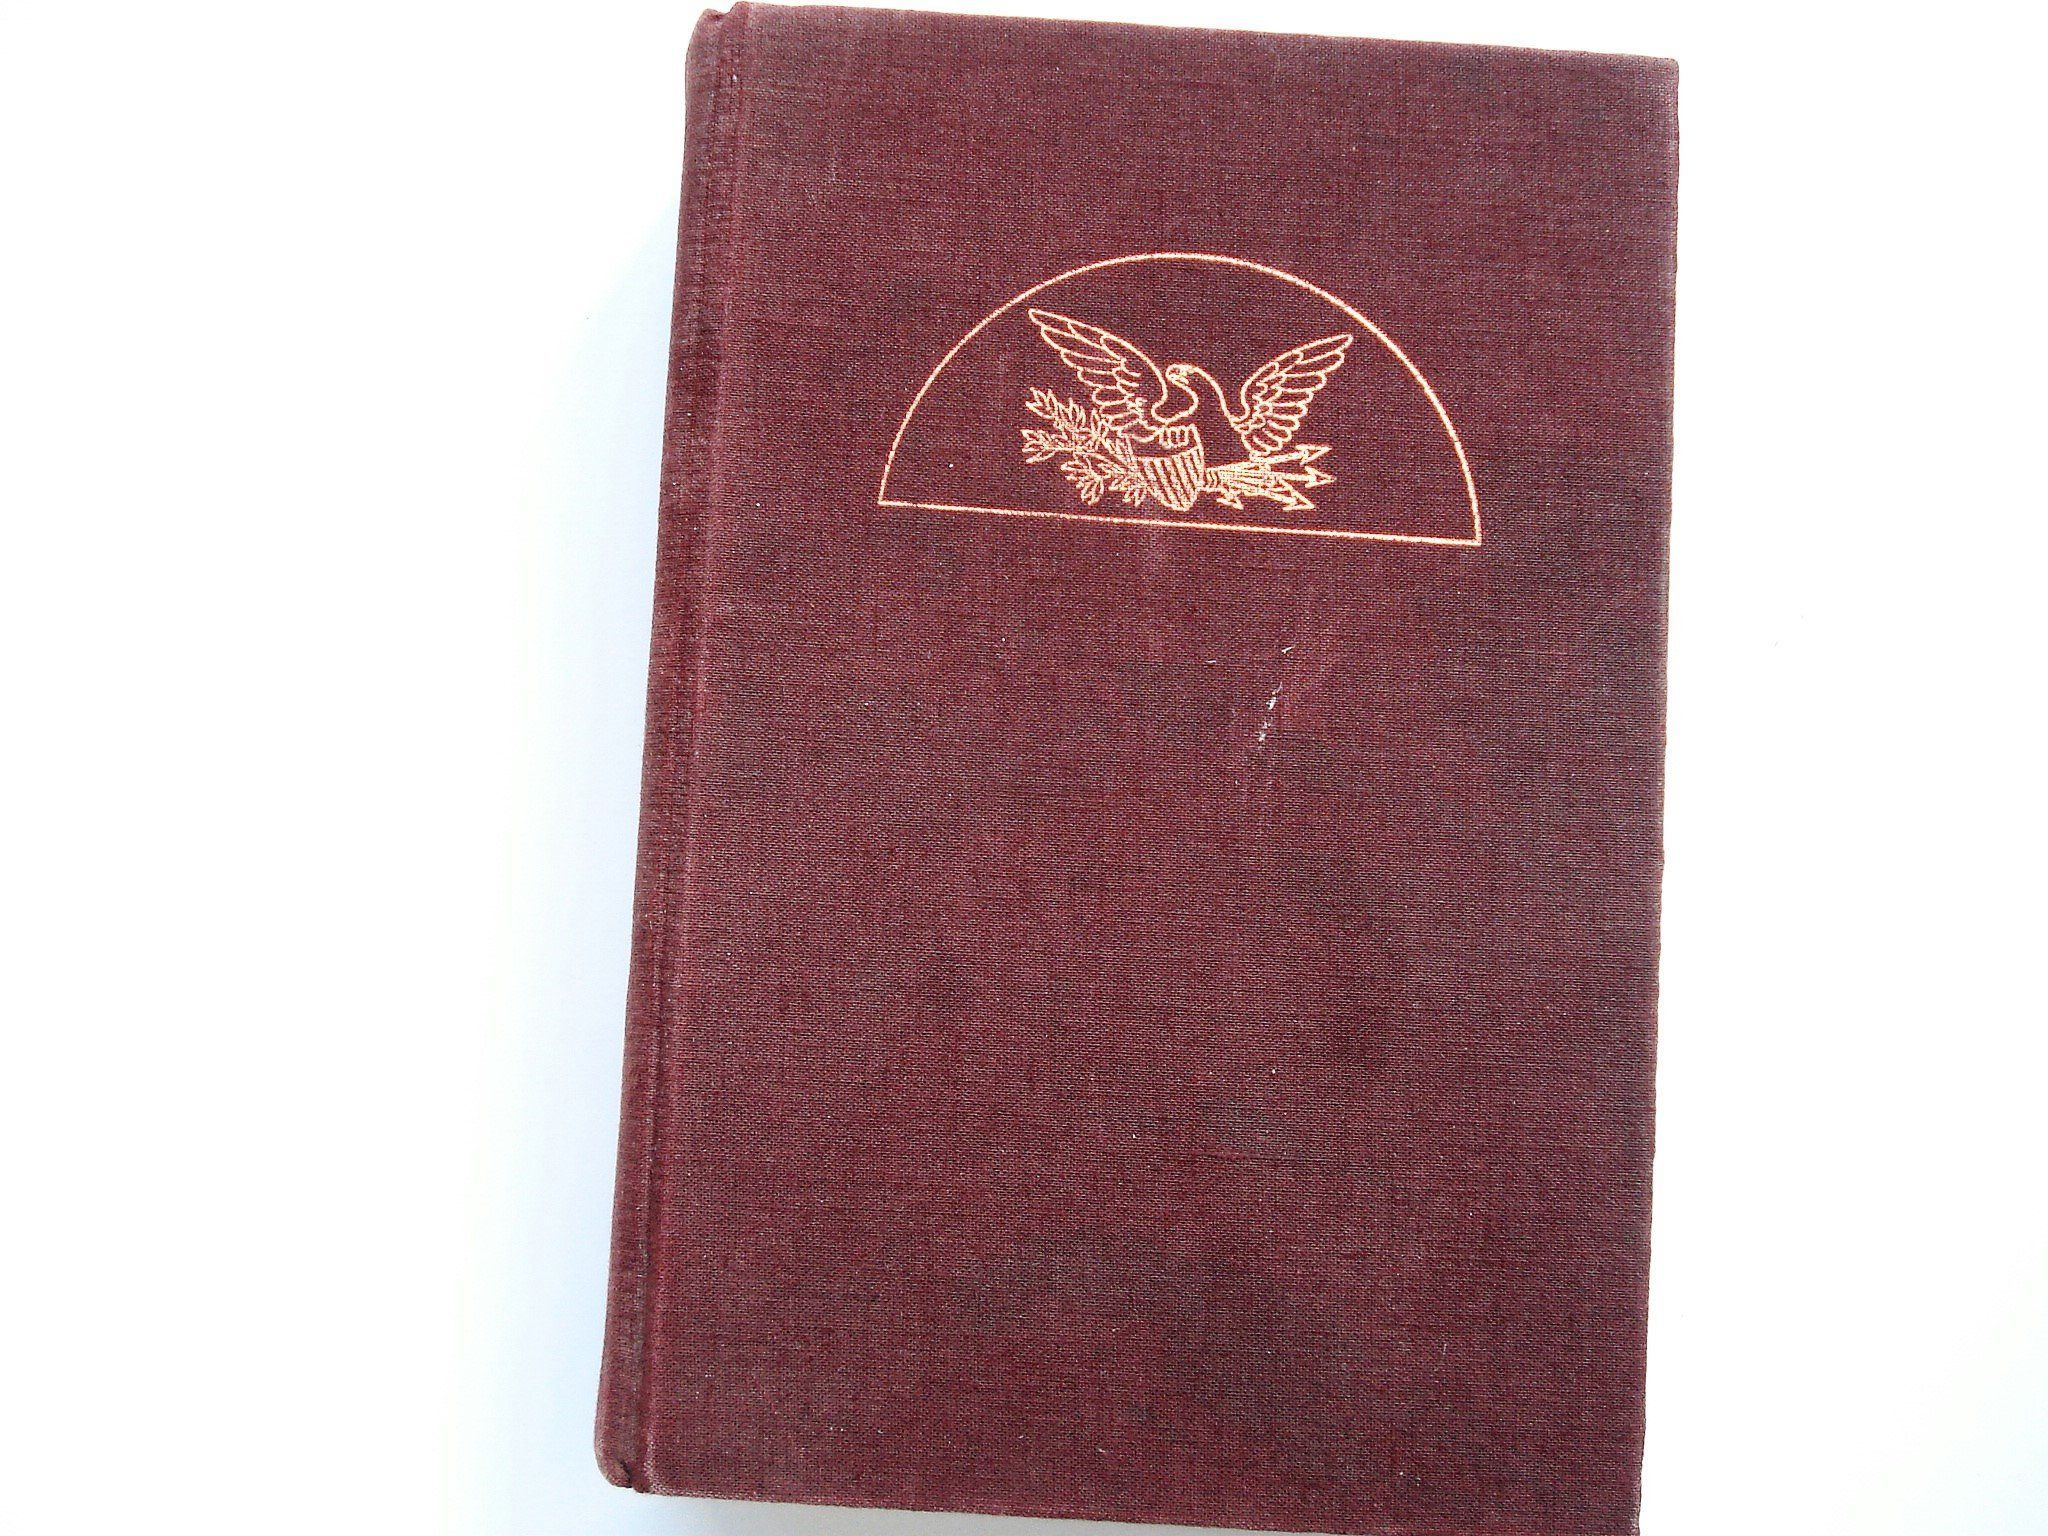 Centennial James Michener Colorado History American Frontier American West Oregon Trail Colorado Indian Tribes Ran With Images American Frontier Indian Tribes Vintage Book